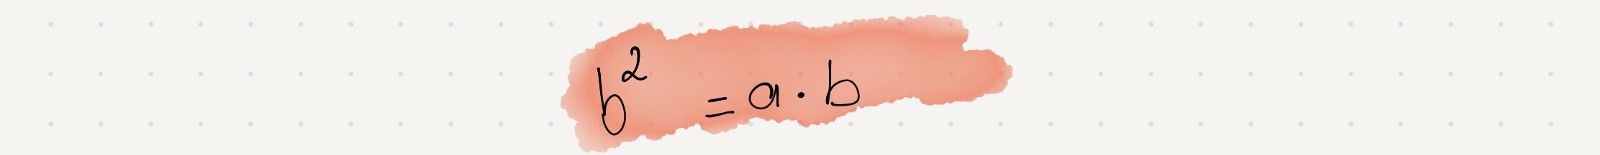 what does a+b equal